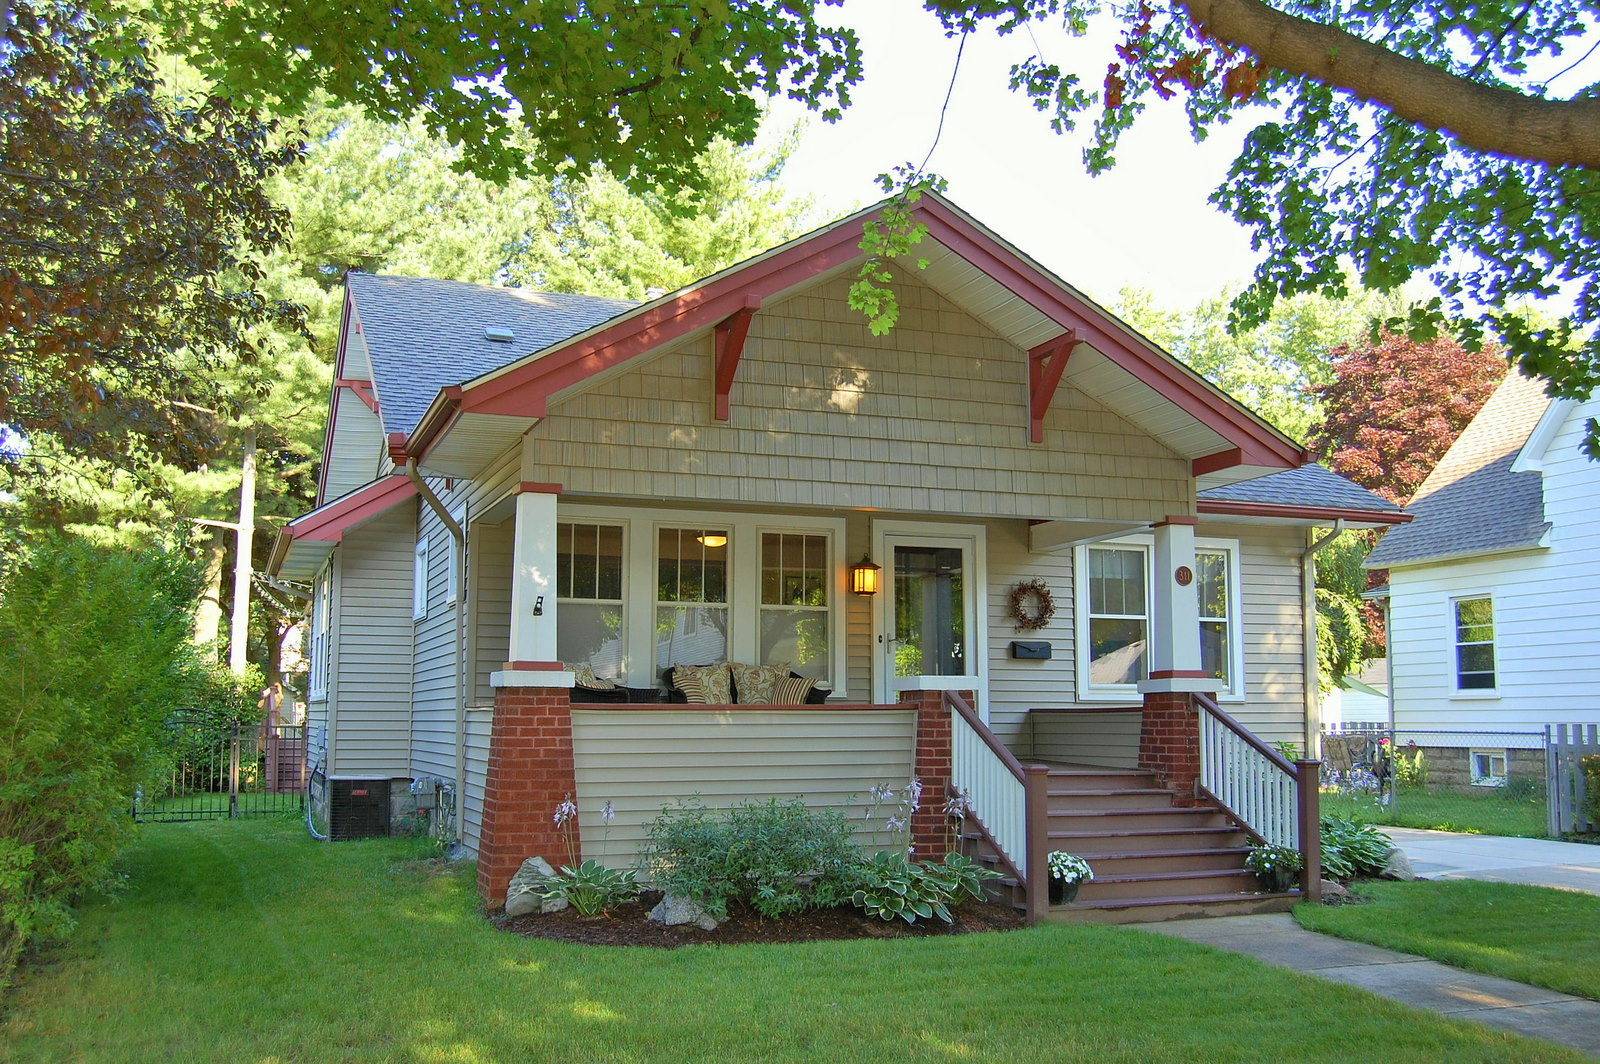 Sold 311 . Harvey St. Fully Updated Craftsman Style